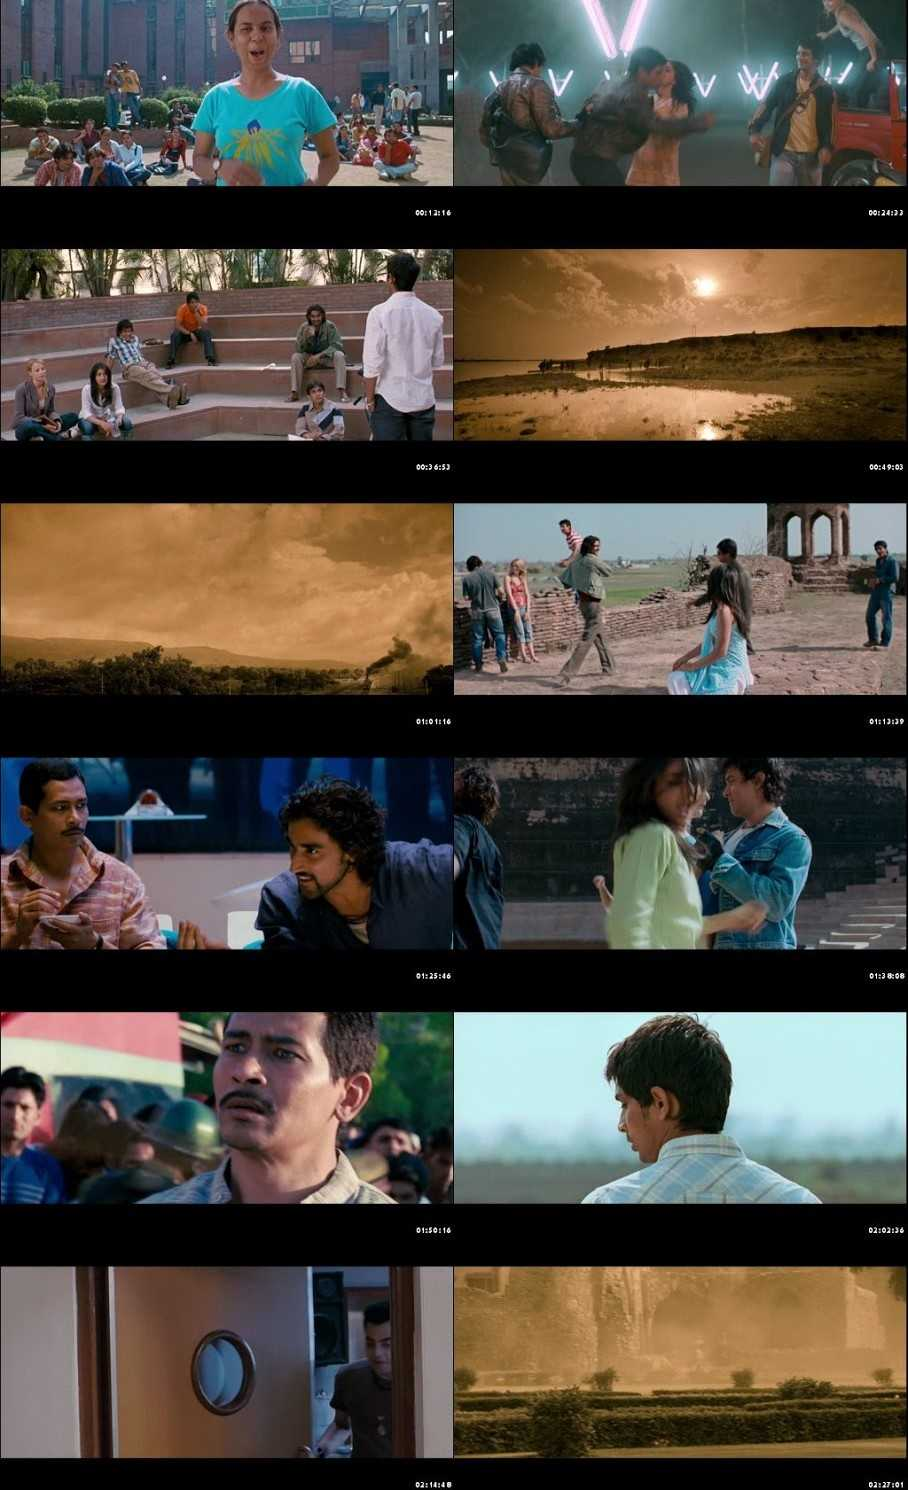 Rang De Basanti 2006 Screenshot 1080p